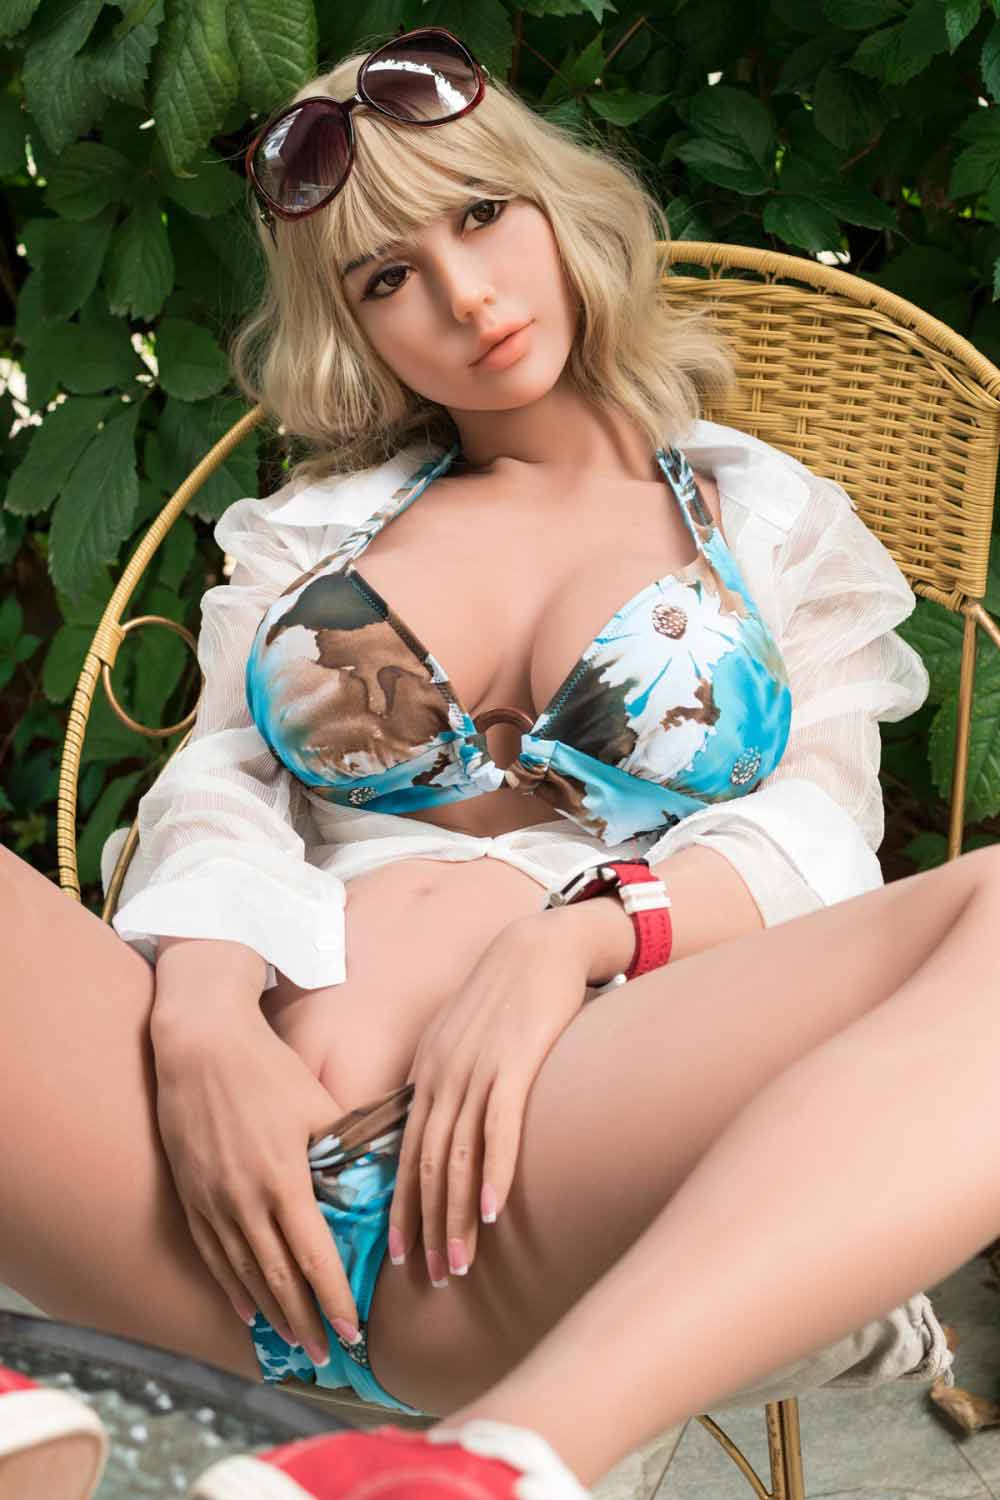 Sex doll with hands between thighs